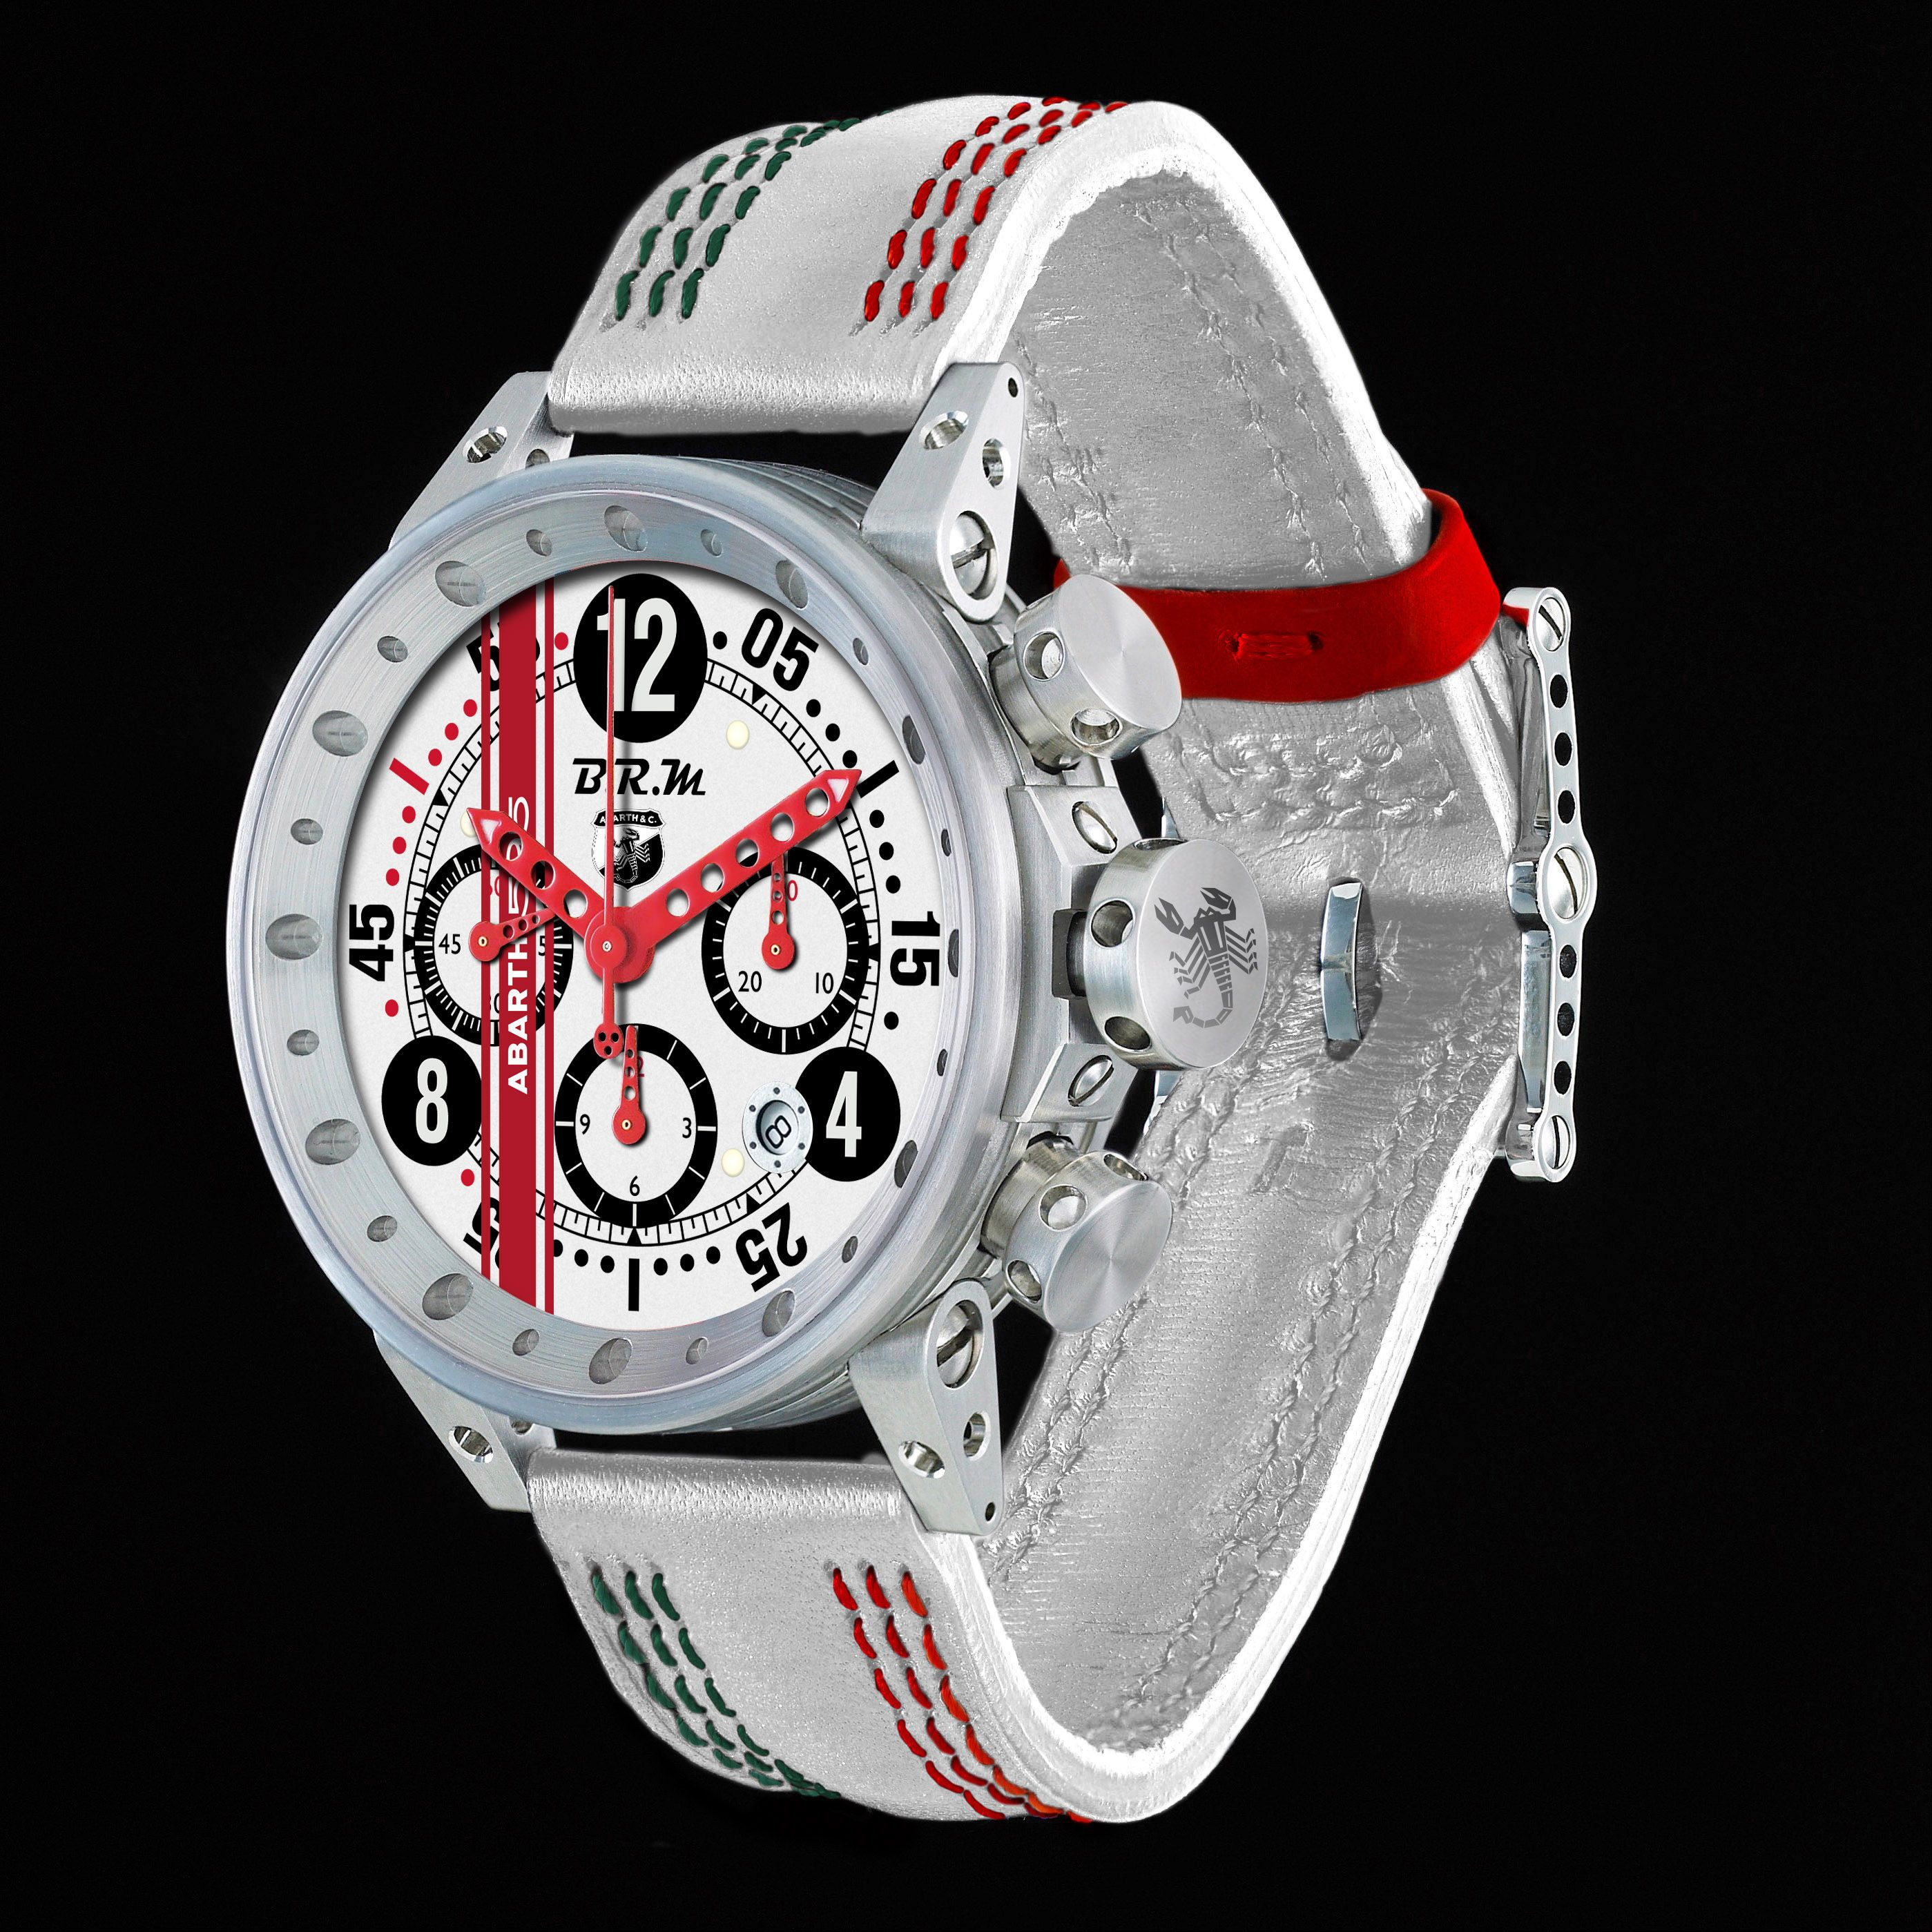 V12 Montres 44 Abarth Brm Manufacture 595Accesories Bg 8Nn0PXwOZk